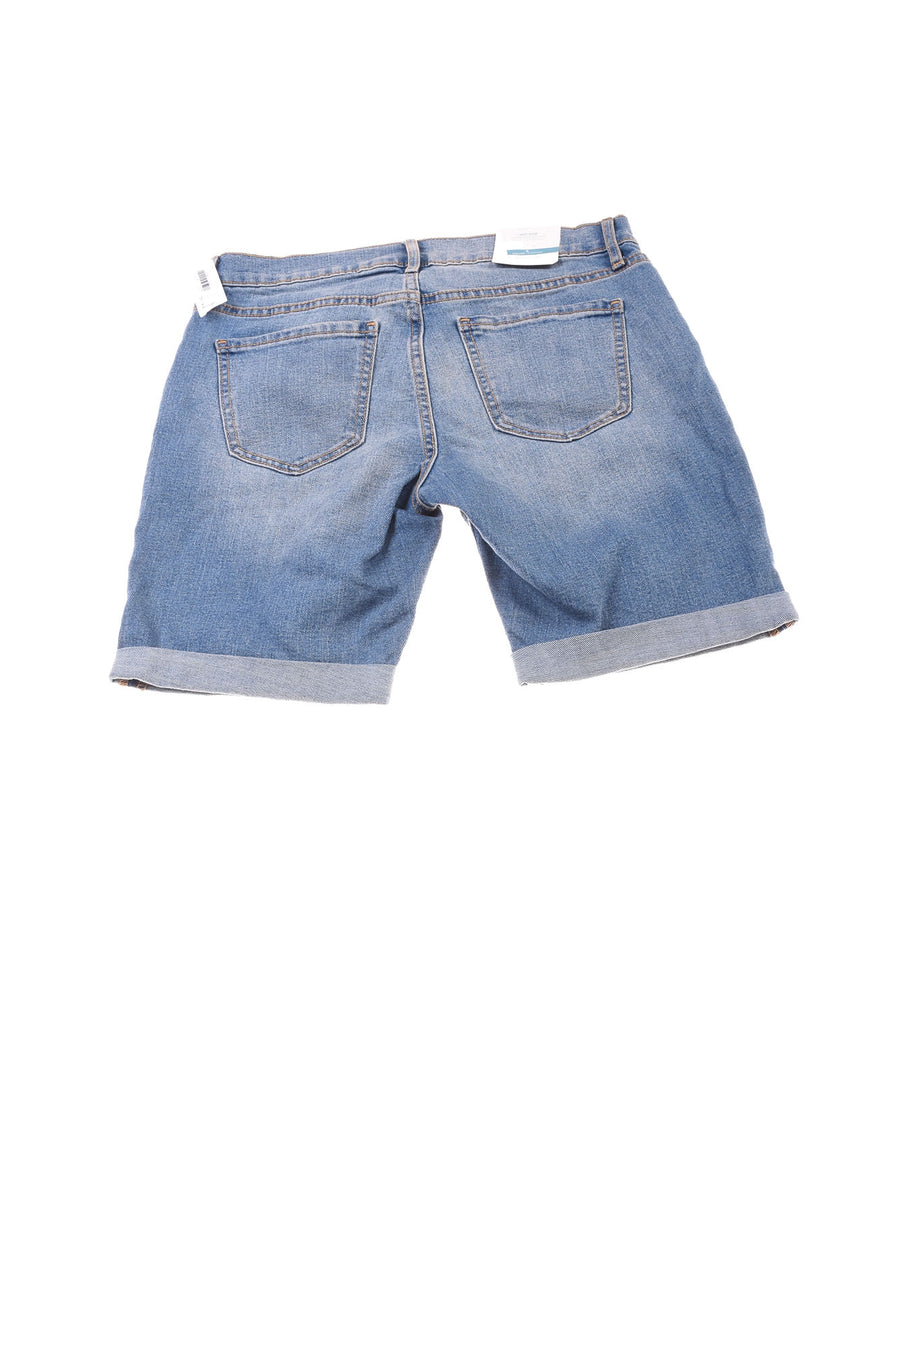 NEW Old Navy Women's Shorts 4 Blue